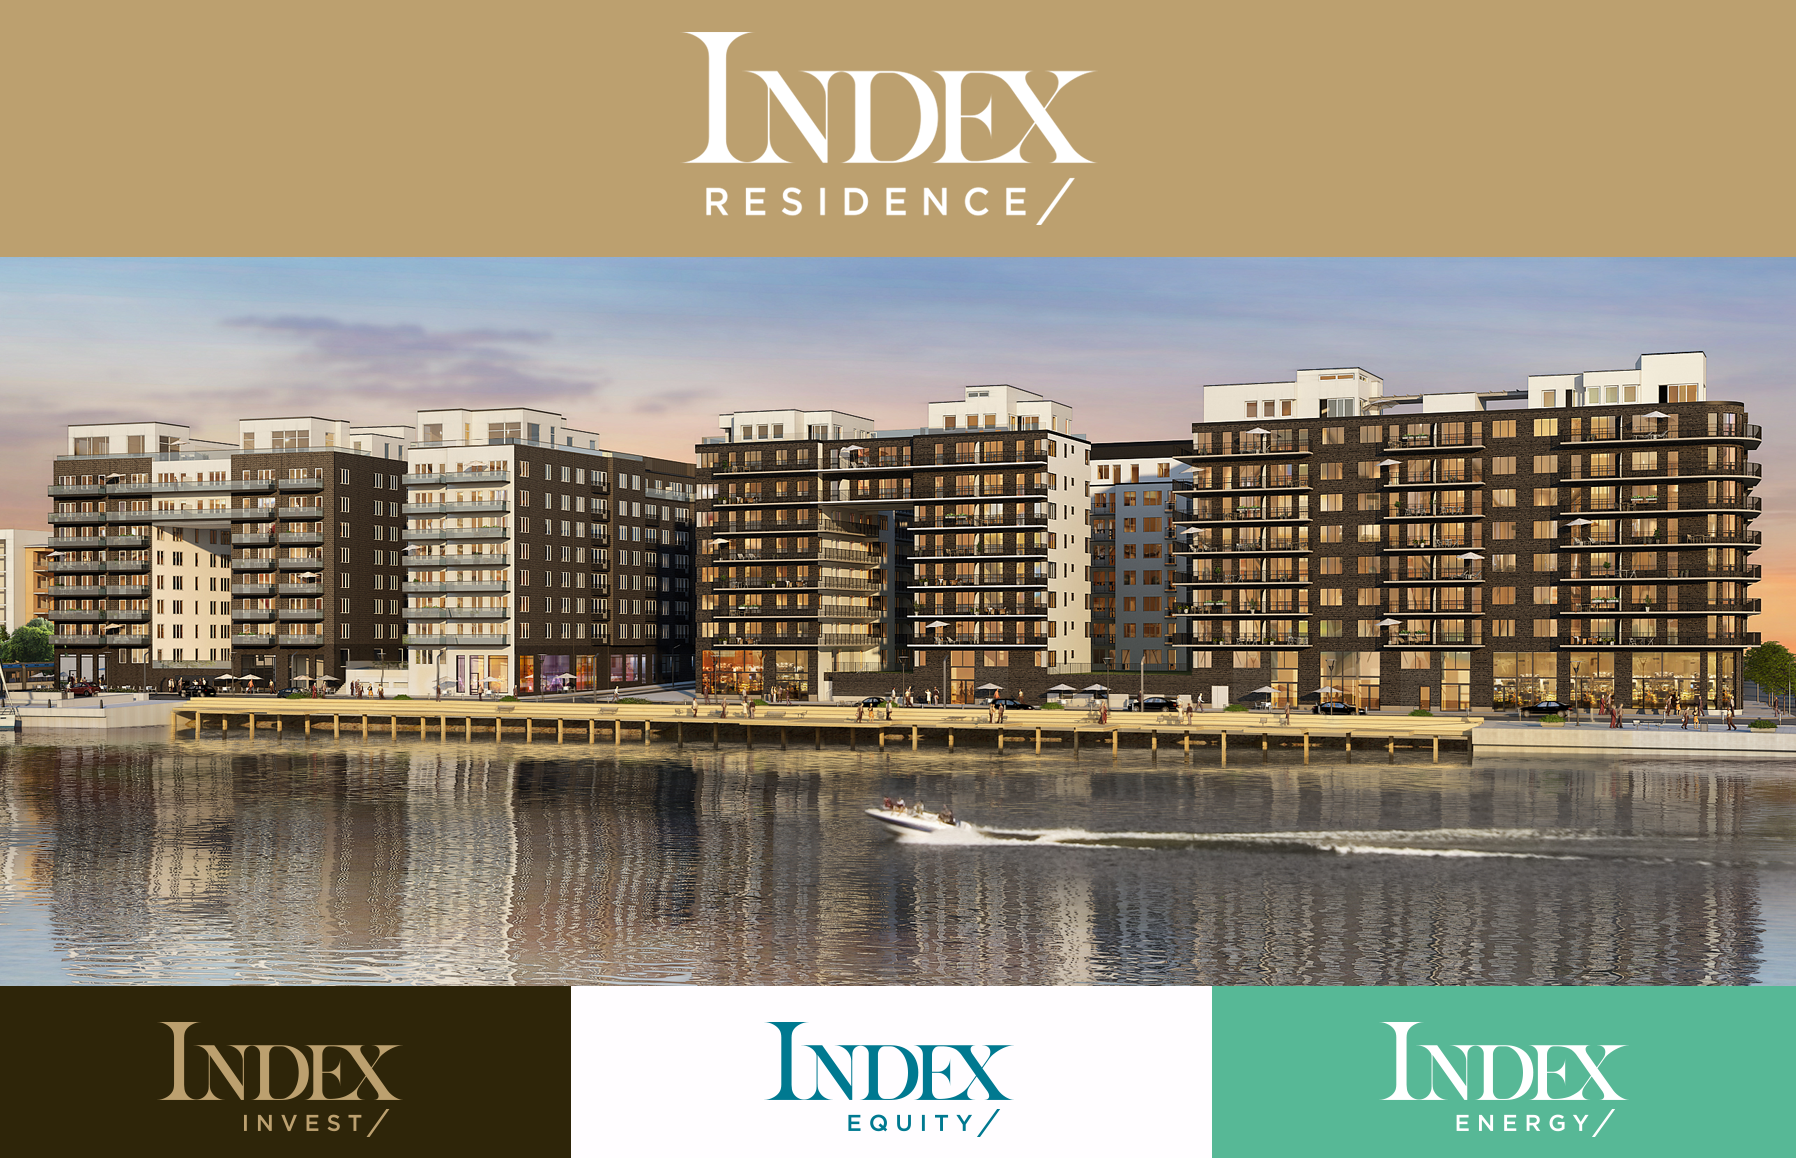 Index Residence / Index Invest / Index Equity / Index Energy